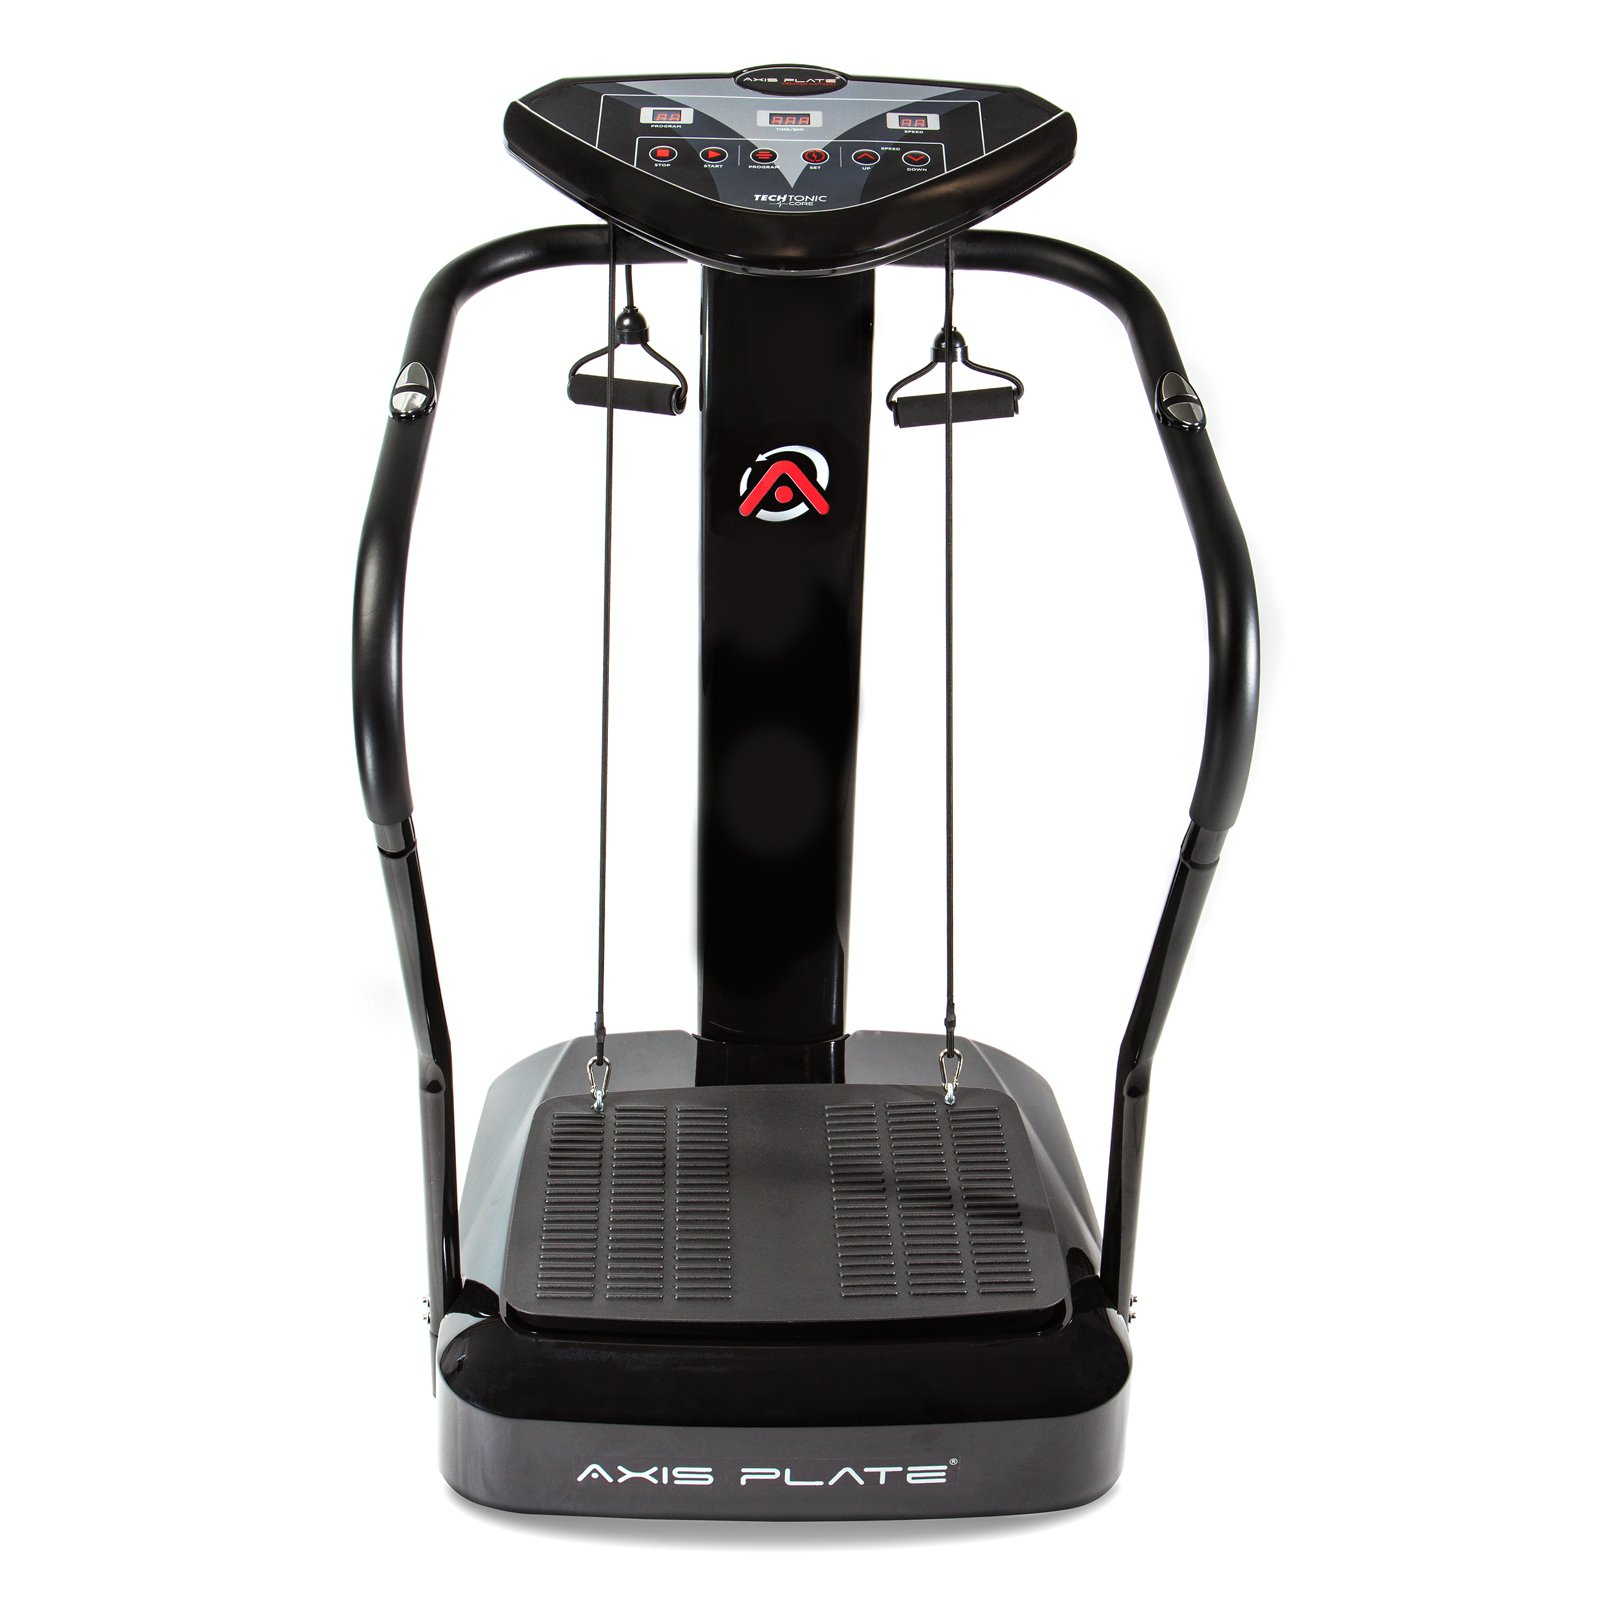 Axis-Plate Whole Body Vibration Platform Training and Exercise Fitness Machine by Axis-Plate (Image #3)